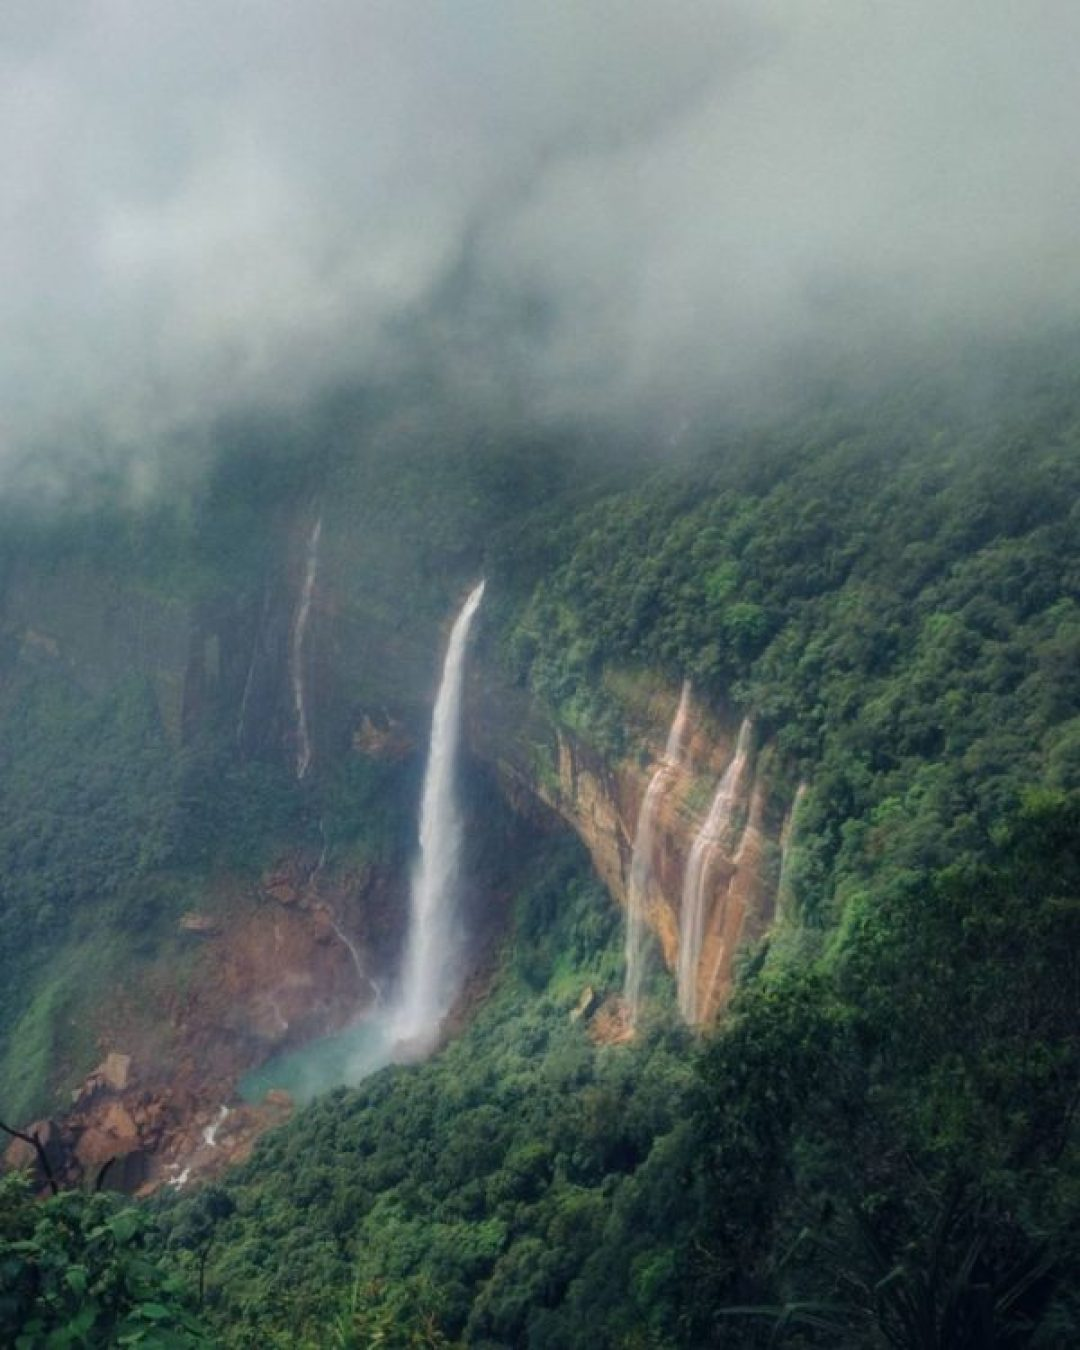 Cherrapunjee, Hill Stations in India